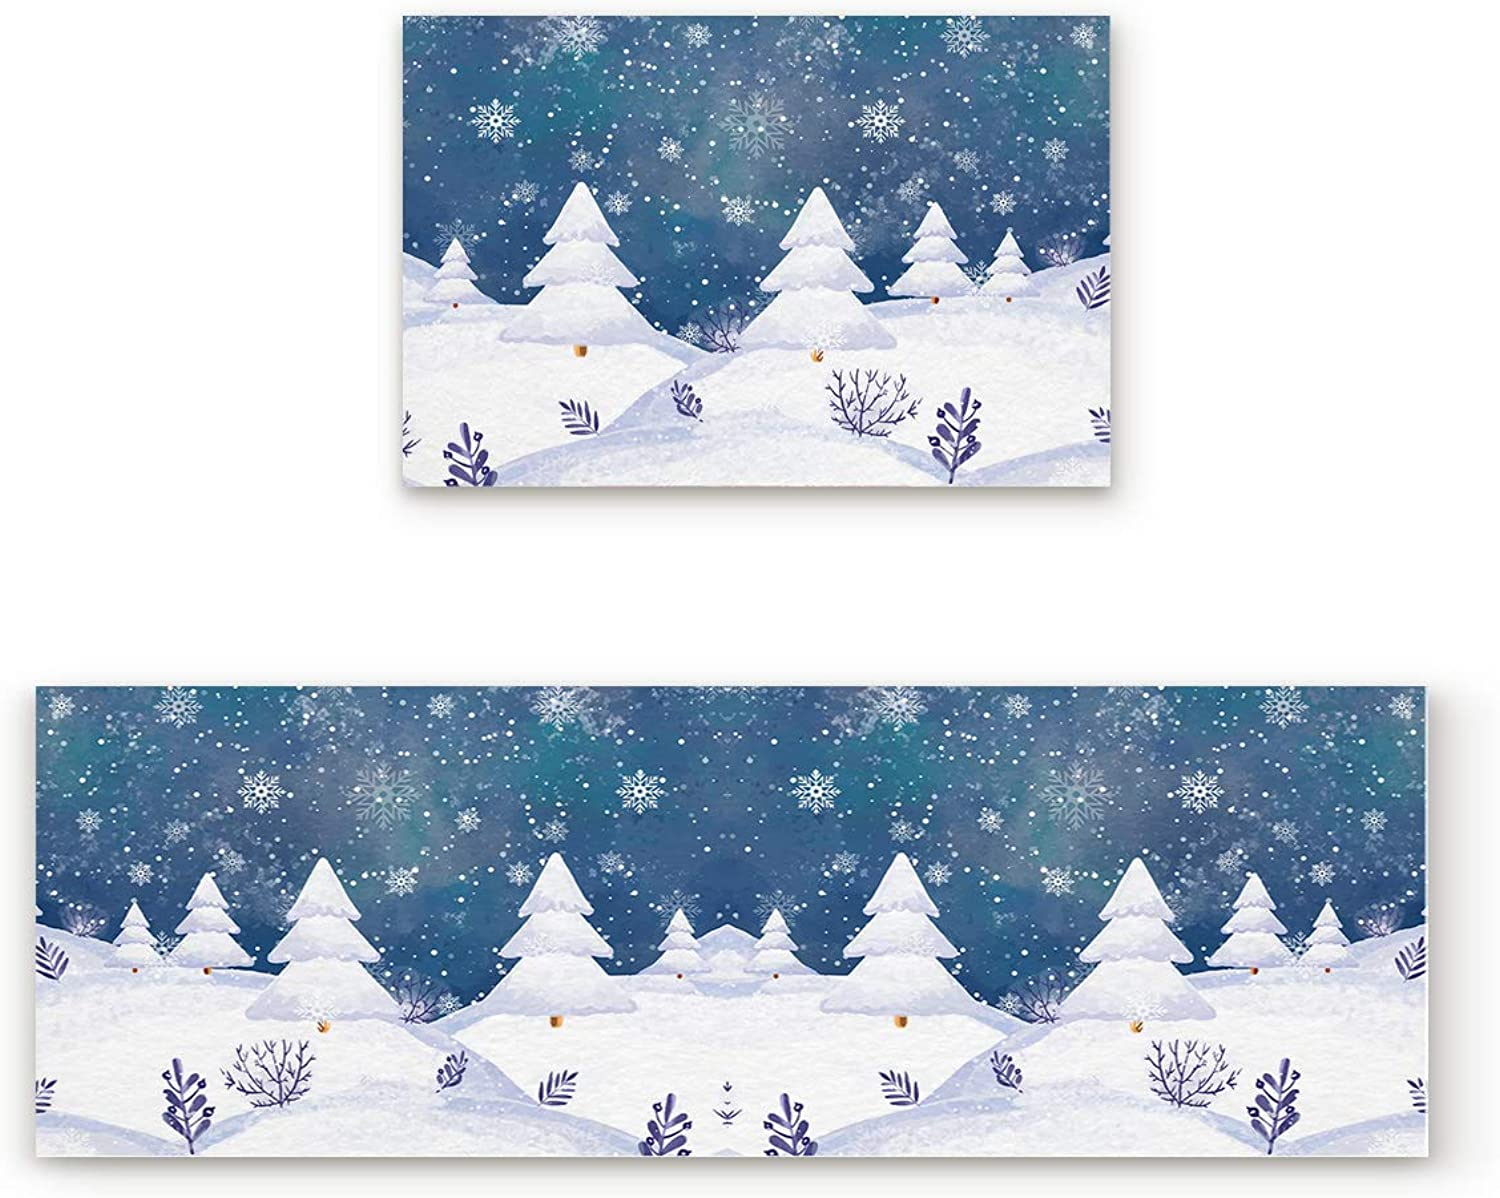 2 Piece Non-Slip Kitchen Mat Rubber Backing Doormat Runner Rug Set, Kids Area Rug Carpet Bedroom Rug Snowflake Snow Cover Pine Trees Winter Theme Christmas Cold Weather Season 19.7x31.5in+19.7x63in